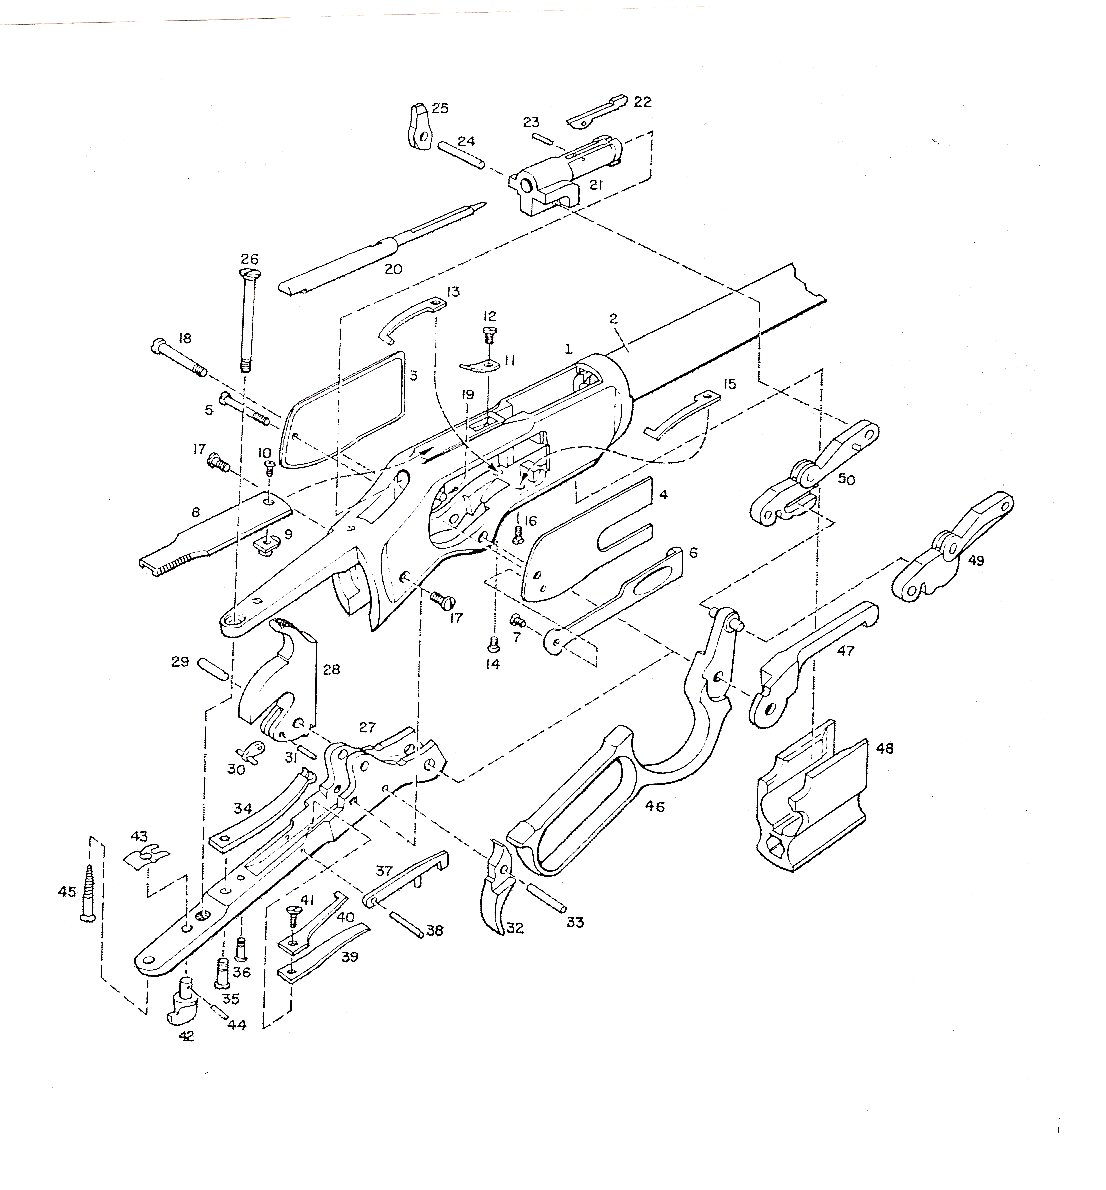 Aug16_01 Winchester Schematic on winchester 1890 parts diagram, winchester 73 parts diagram, winchester model 12 schematics, winchester 1903 schematic, winchester model 94 exploded-view, winchester 37a schematic, winchester rifles, winchester 1300 schematic, winchester 1906 schematic, cva hawken rifle schematic, winchester model 190 parts diagram, winchester model 61 schematic, winchester model 24 schematic, winchester 1897 schematic, winchester model 67 parts diagram, winchester 22 model 270 schematic, winchester model 77 schematic, winchester 1895 schematic, winchester 1894 parts diagram, winchester 1876 schematic,